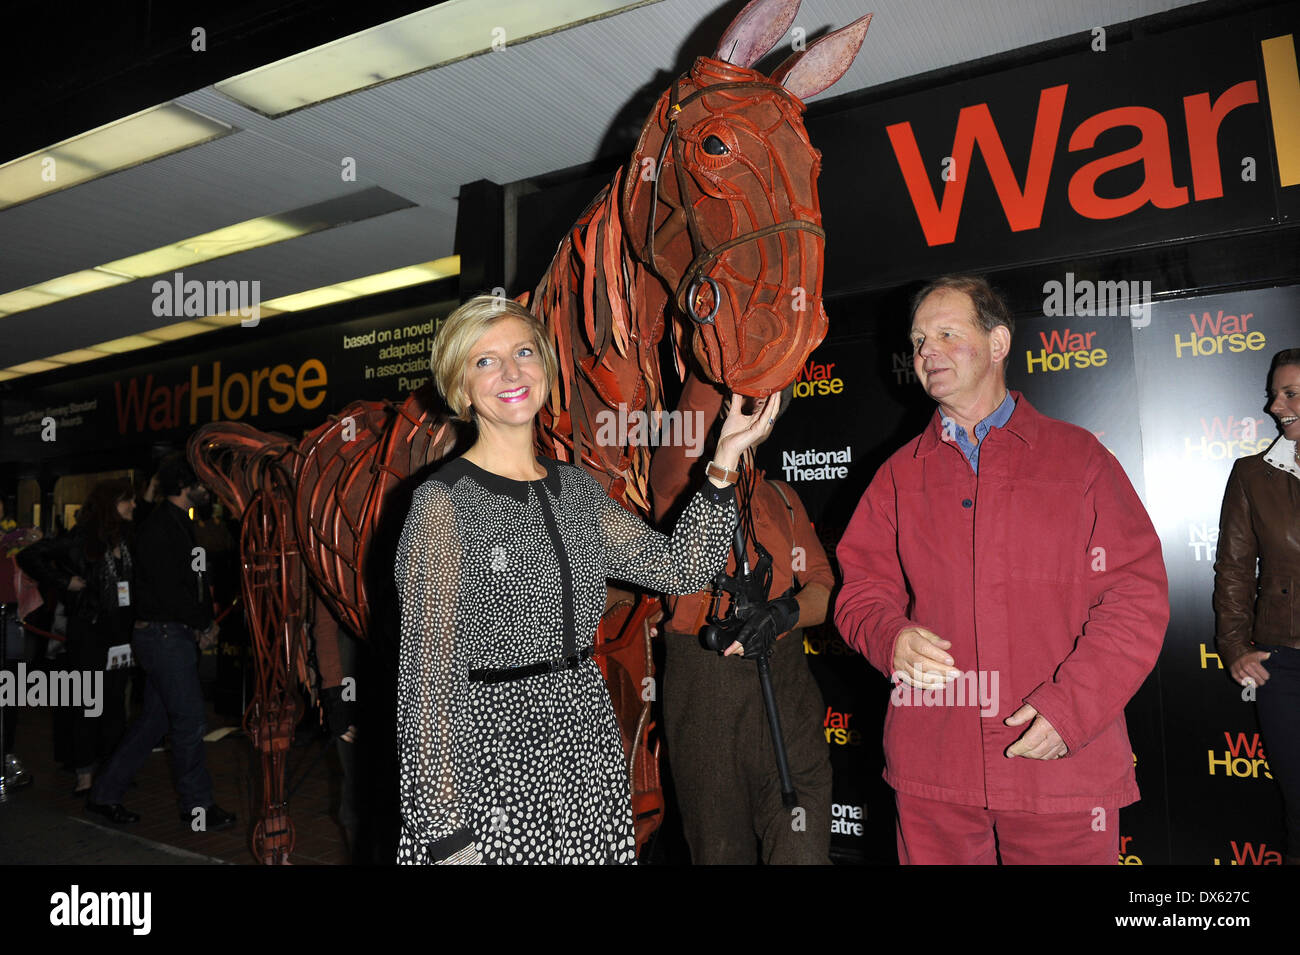 Marianne Elliott and Michael Morpurgo Attends the 5th anniversary performance of 'War Horse' at The New London Theatre, Drury Lane London, England - 25.10.12 Featuring: Marianne Elliott and Michael Morpurgo Where: London, United Kingdom When: 26 Oct 2012 - Stock Image